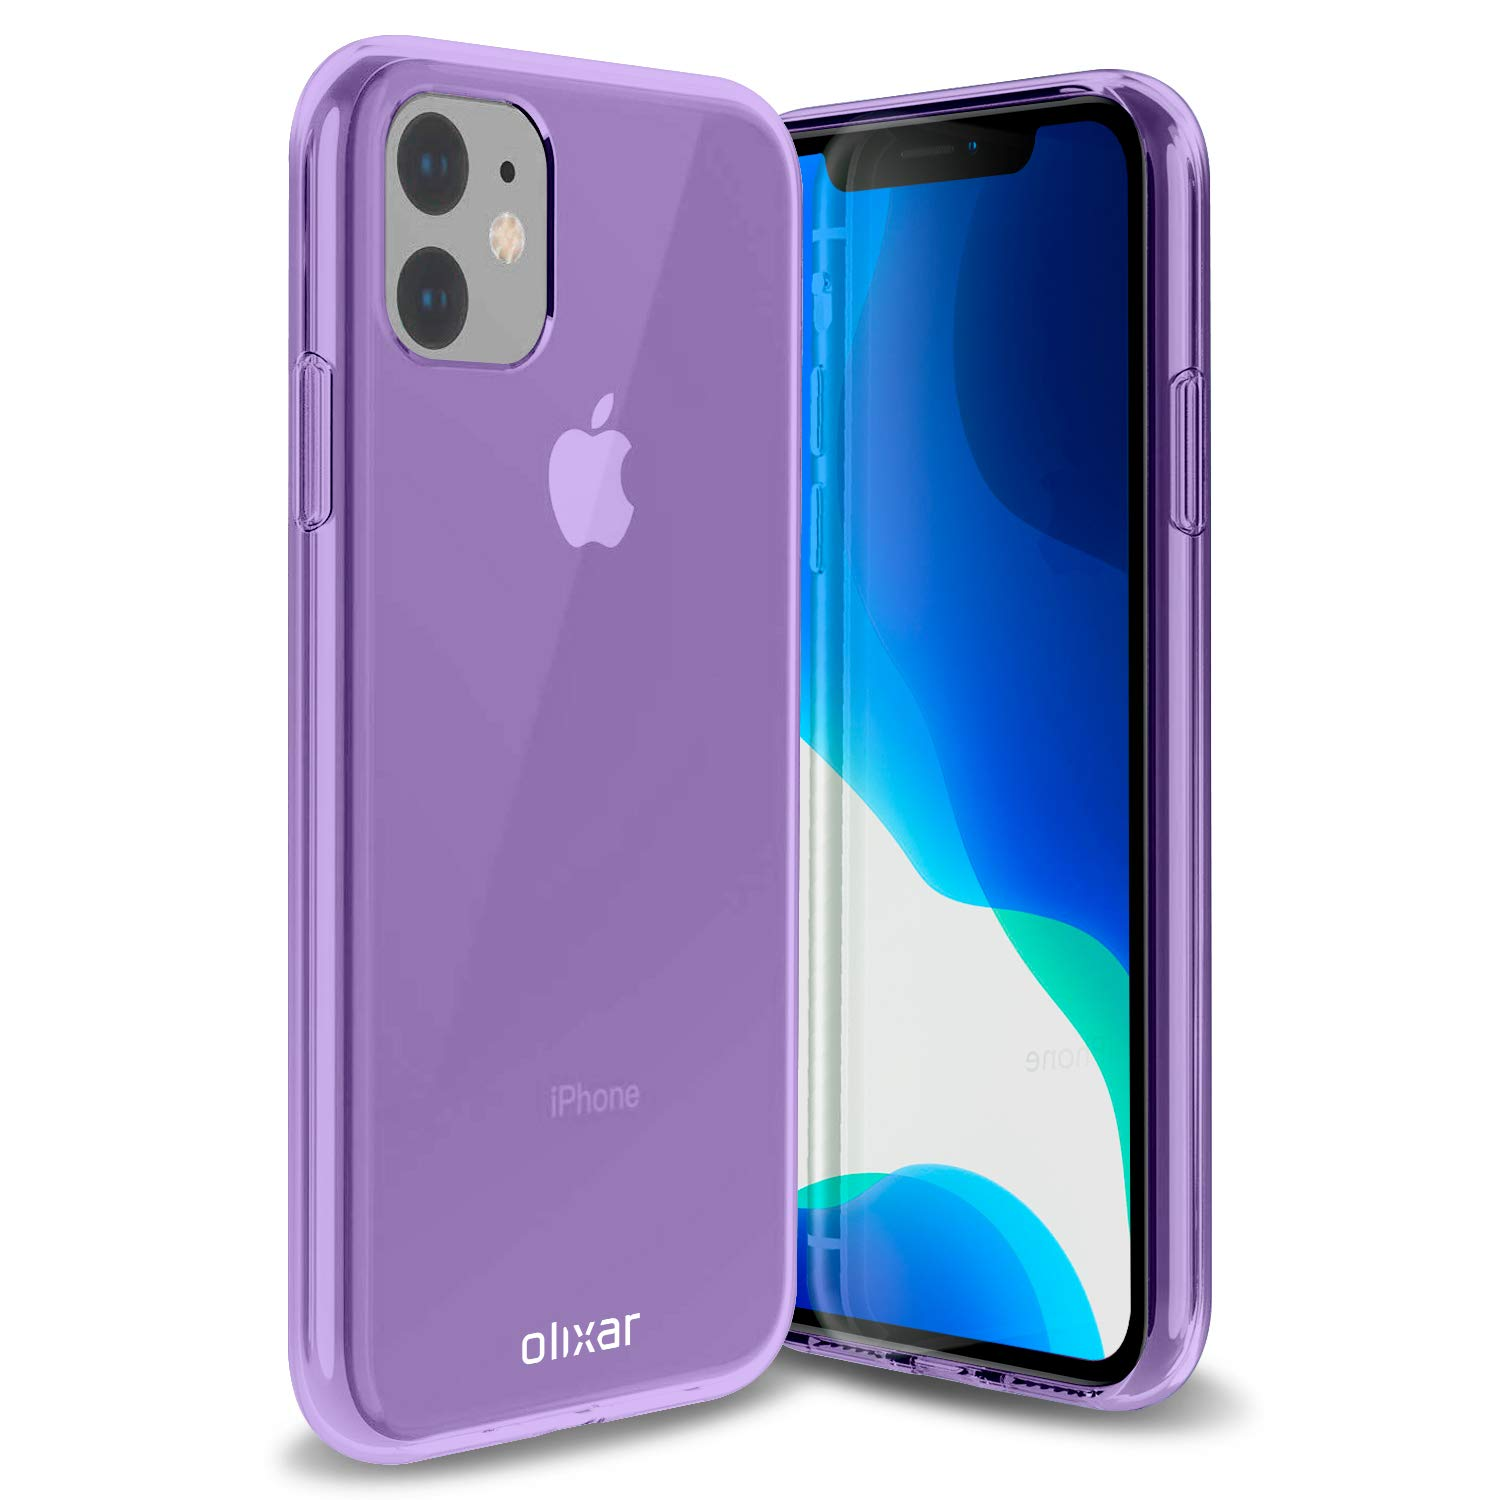 Olixar for iPhone 11 Gel Case - Flexible Slim Silicone TPU - FlexiShield - Thin Protective Cover - Wireless Charging Compatible - Purple